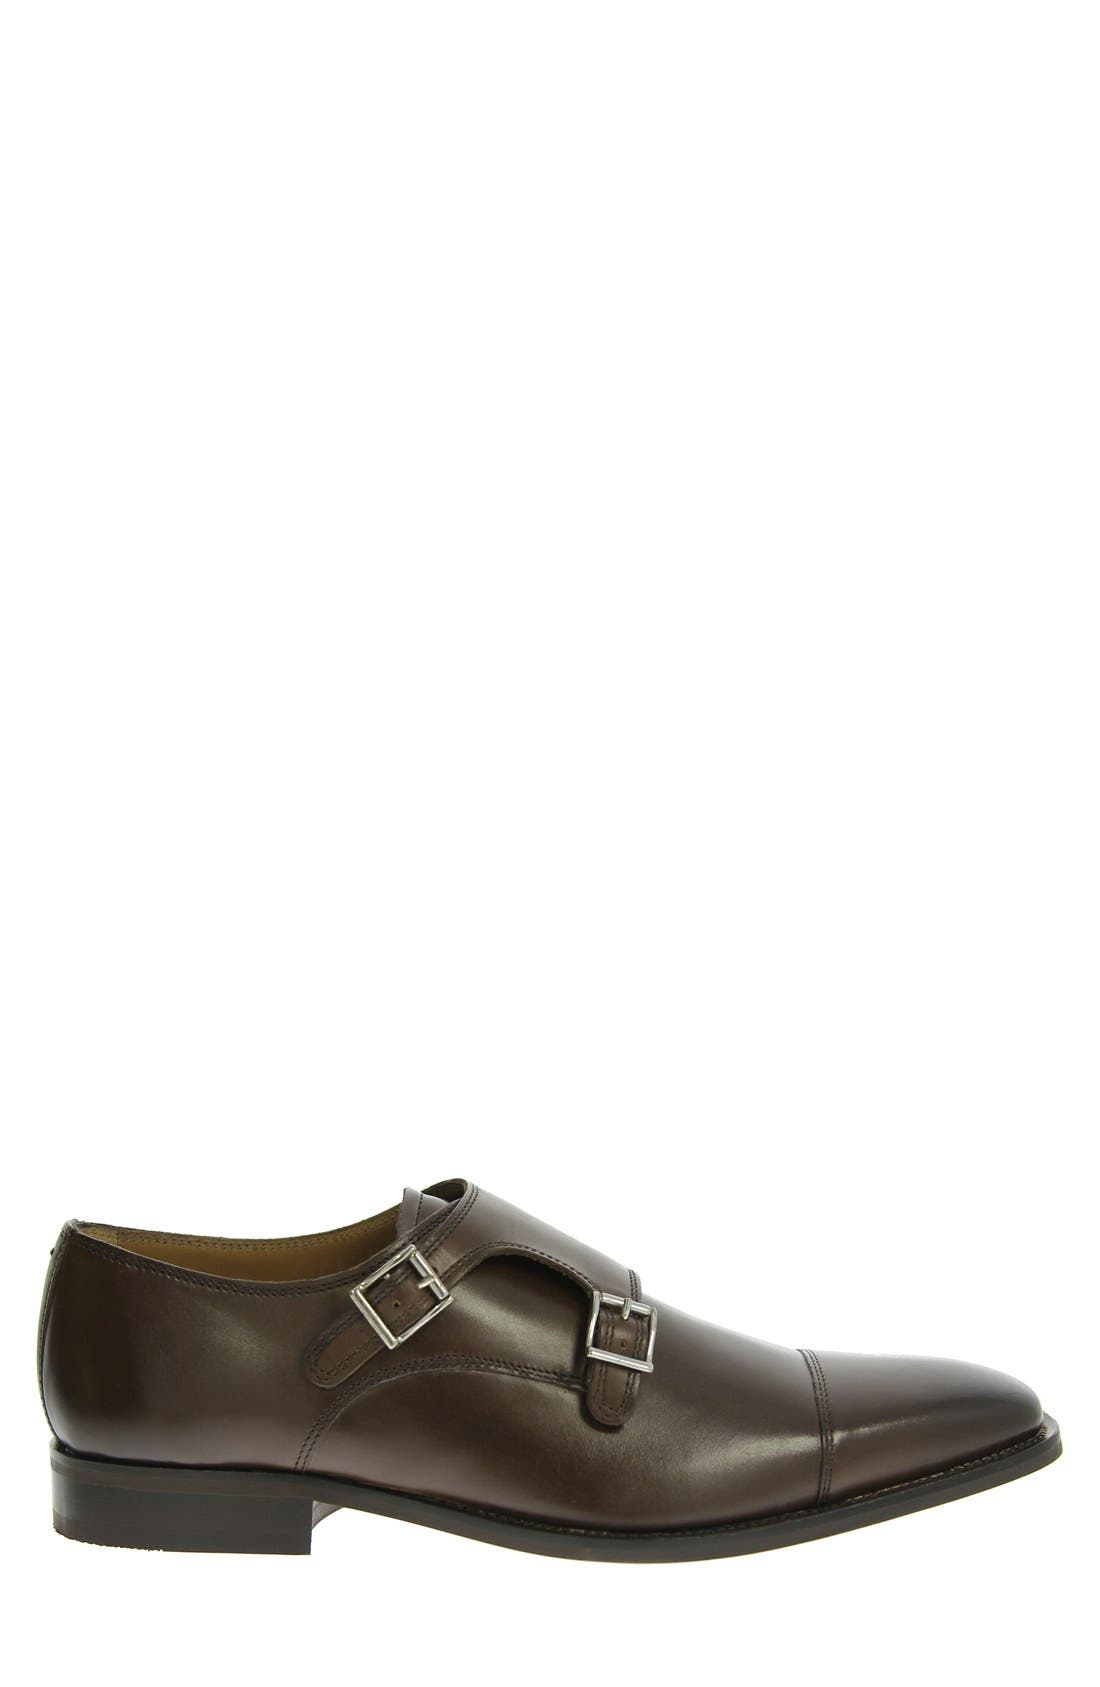 FLORSHEIM, 'Sabato' Double Monk Strap Shoe, Alternate thumbnail 3, color, BROWN